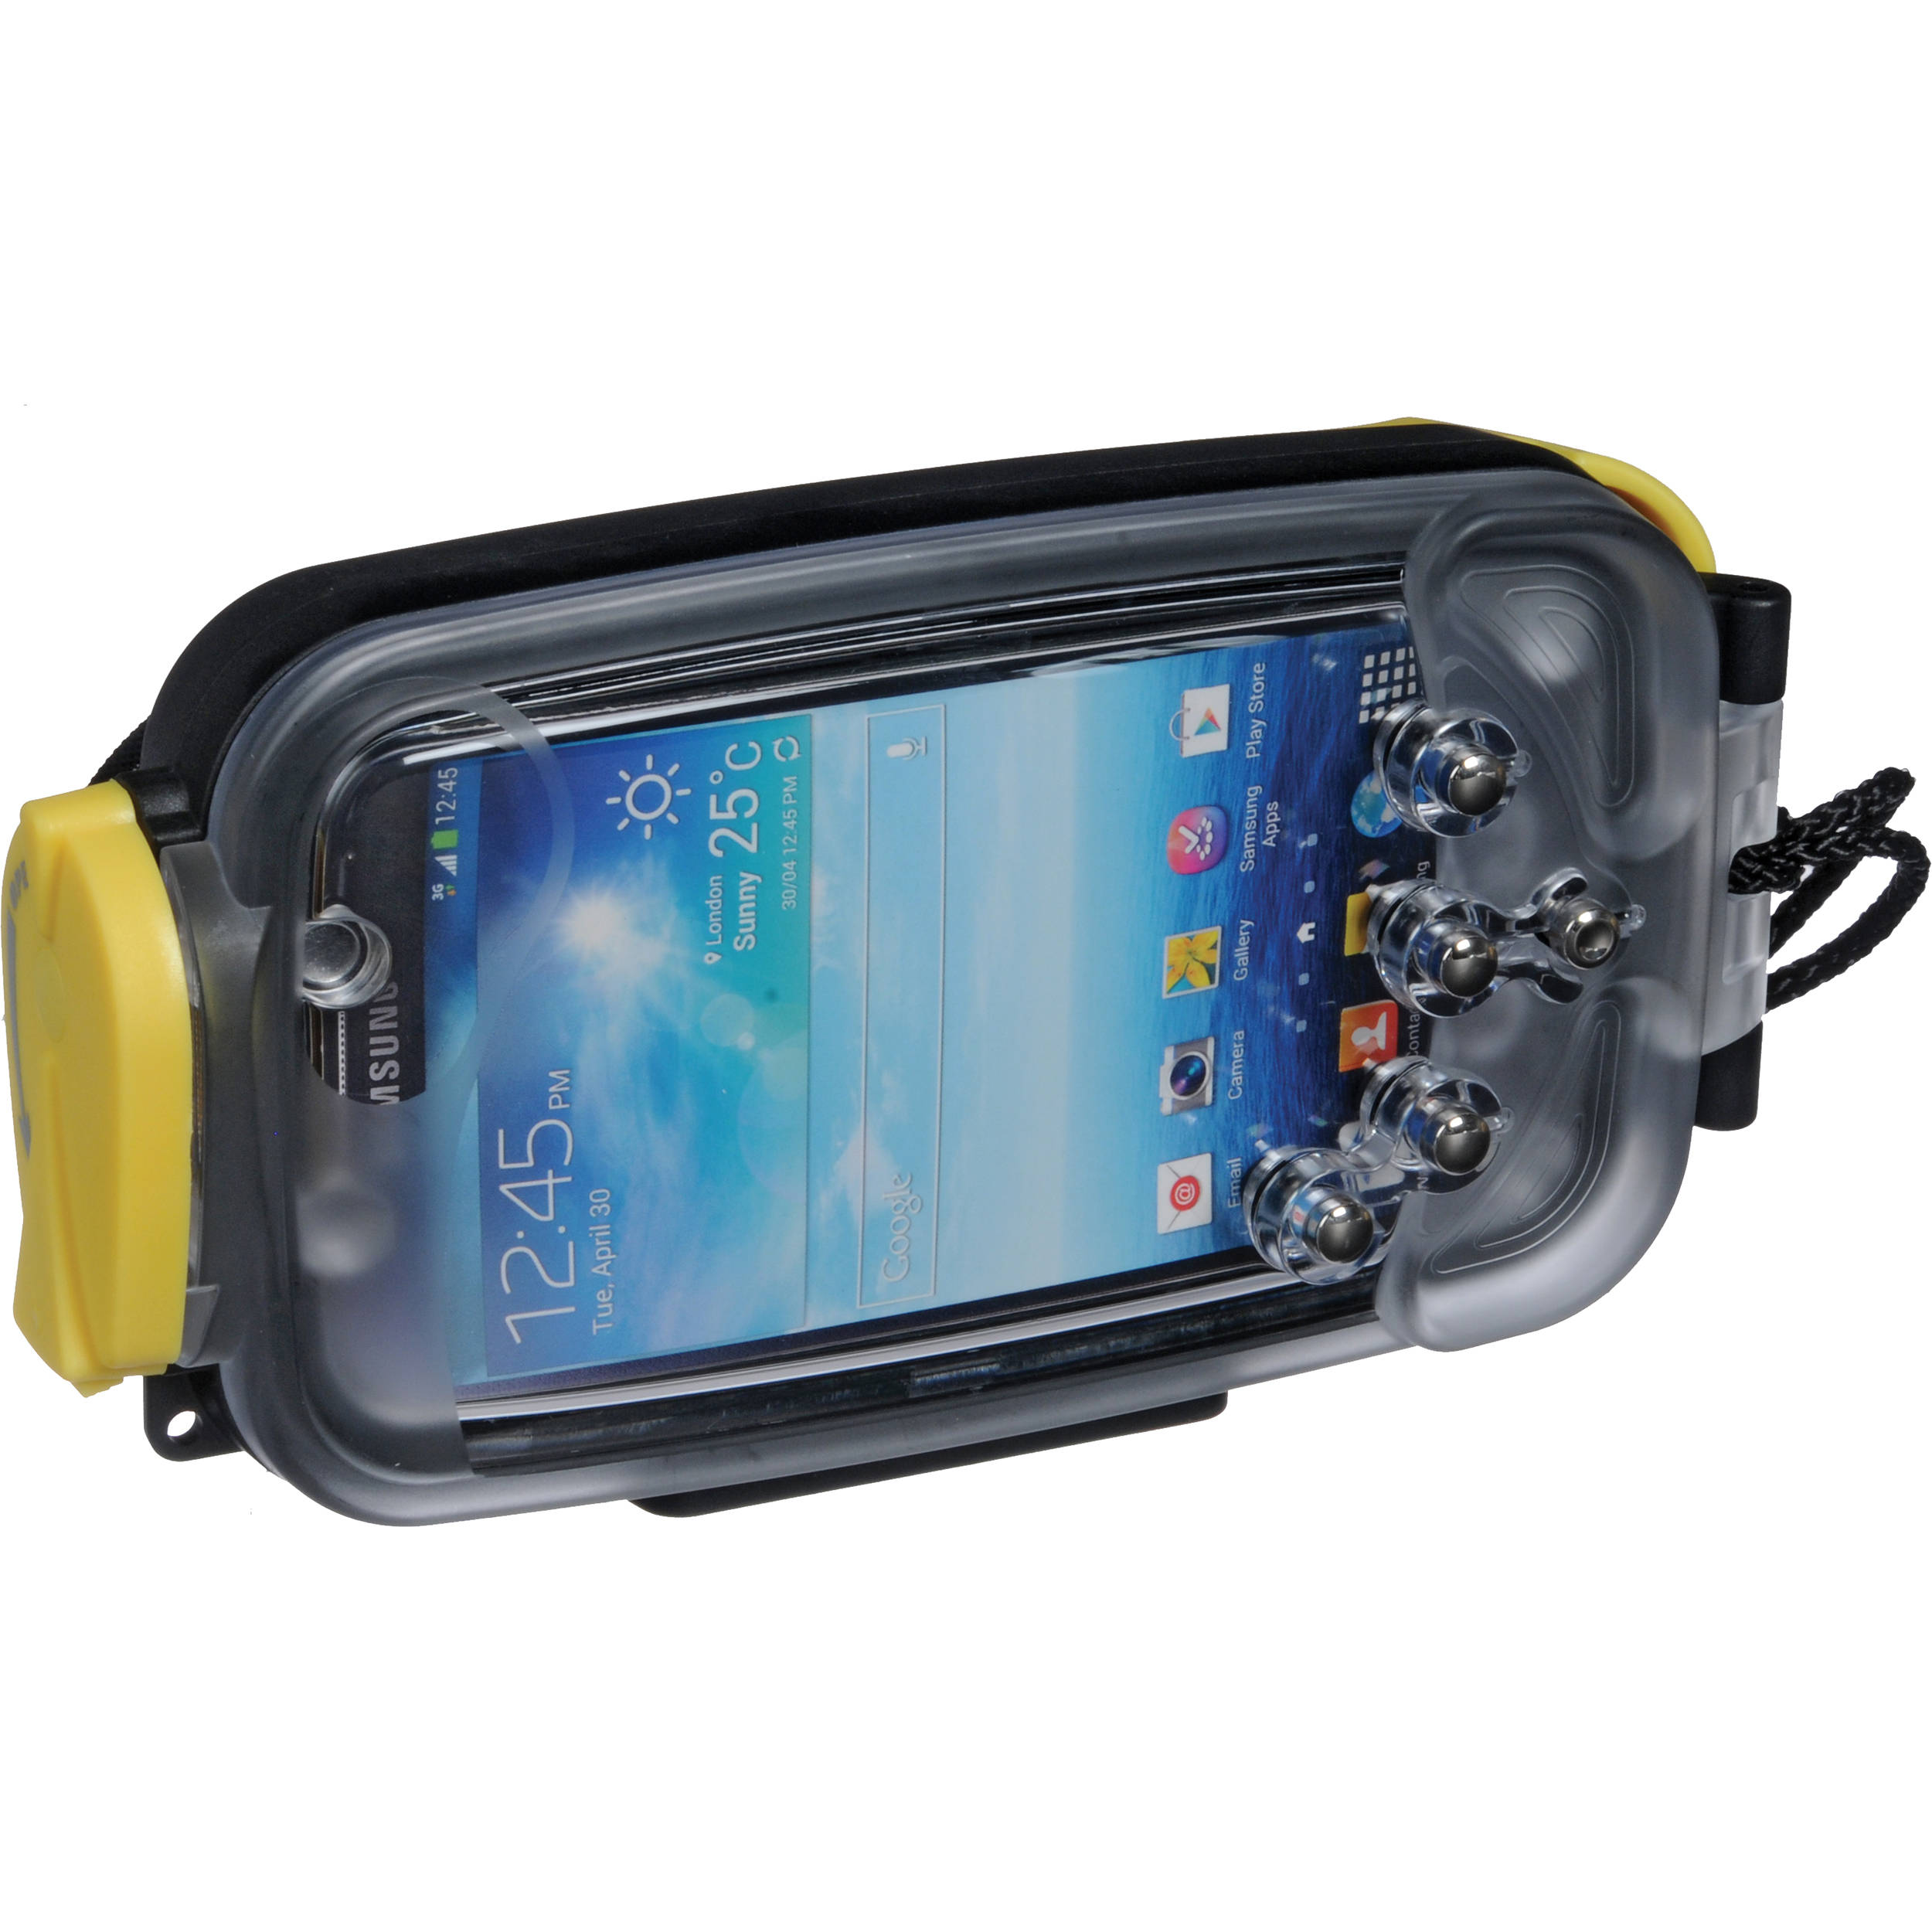 best service 6c62f af5b7 Watershot Underwater Housing for Samsung Galaxy S4 (Black with Yellow  Highlights)